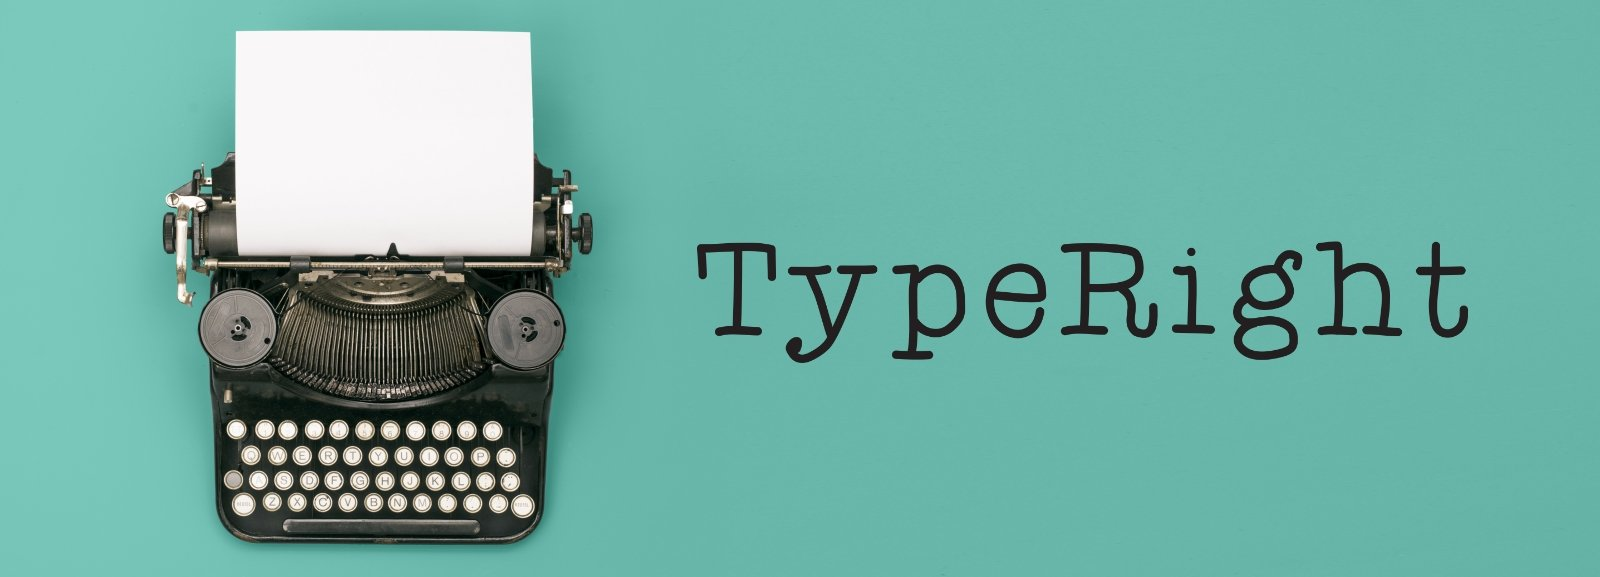 Typewriter next to TypeRight logo